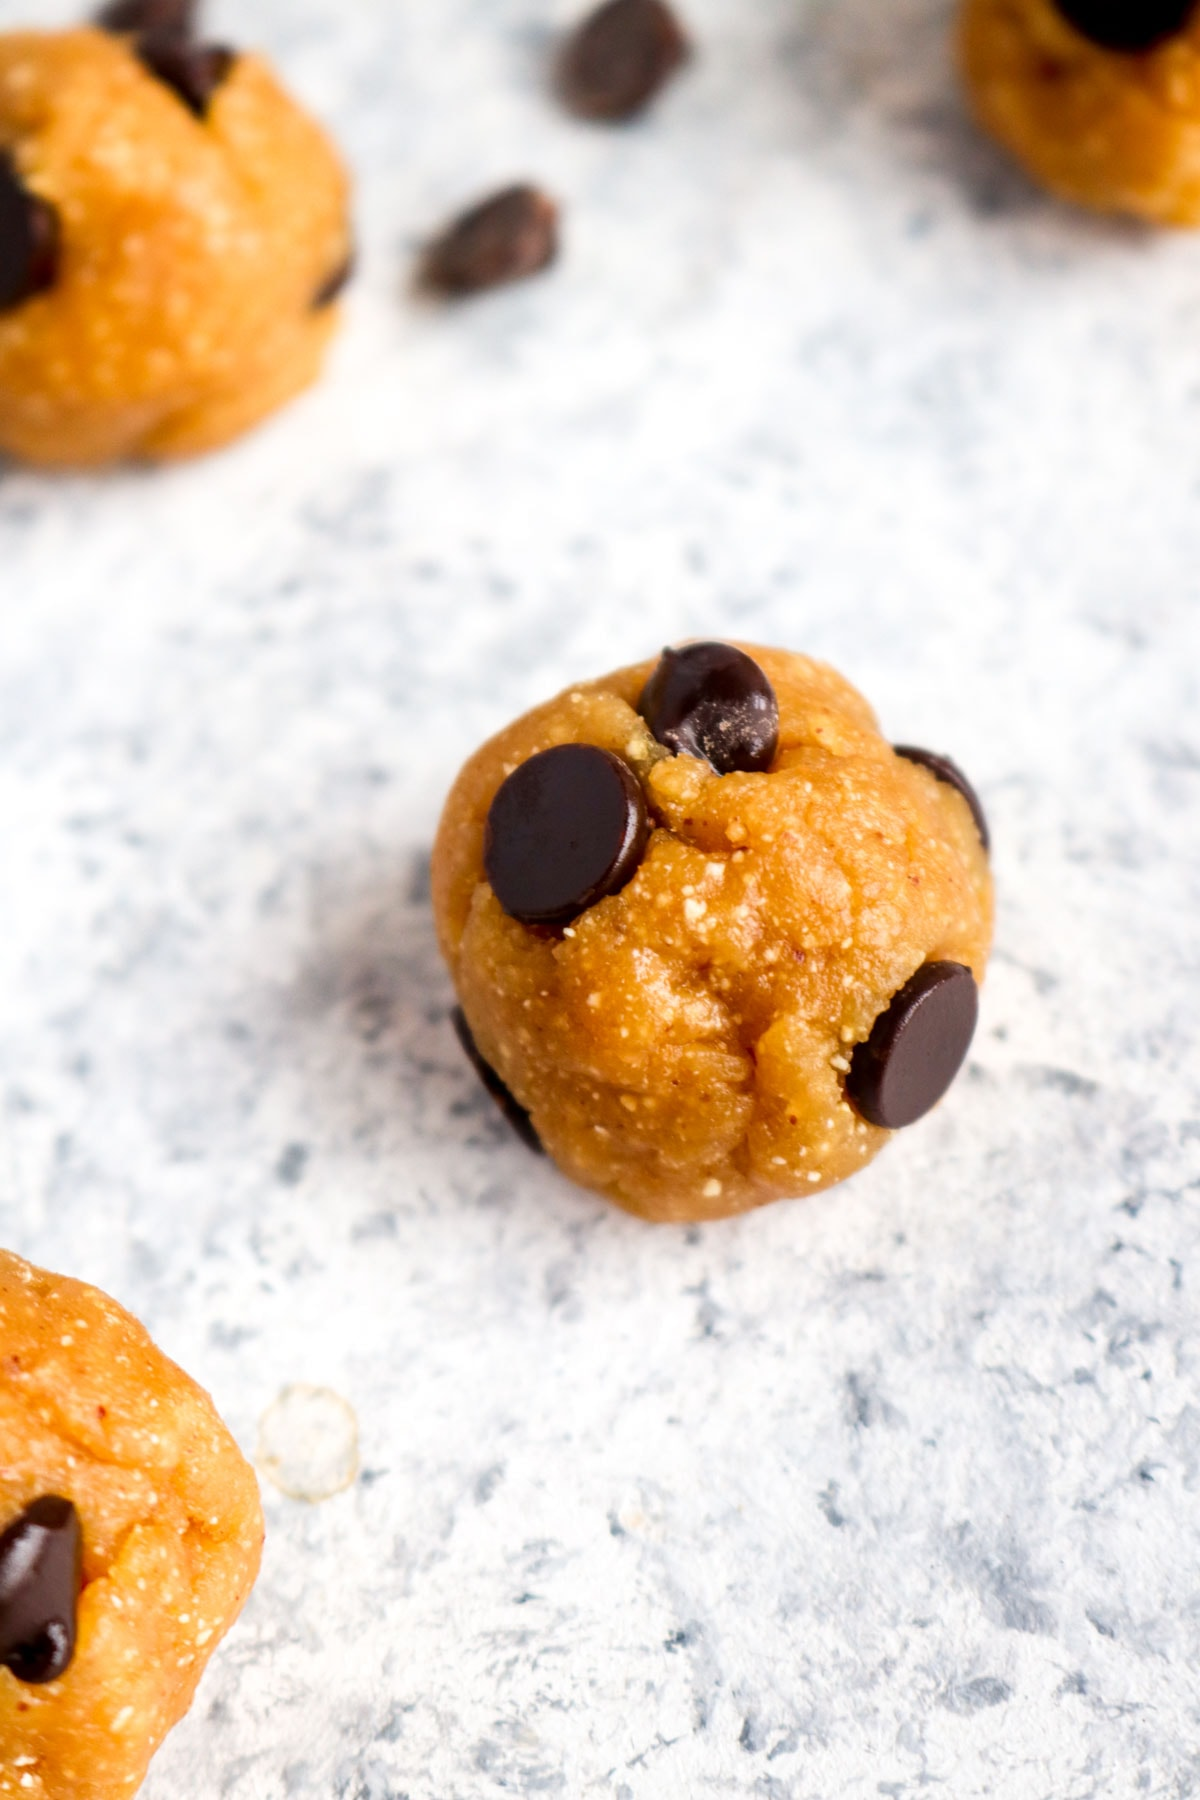 Edible grain free cookie dough rolled into a bite sized ball for easy snacking.